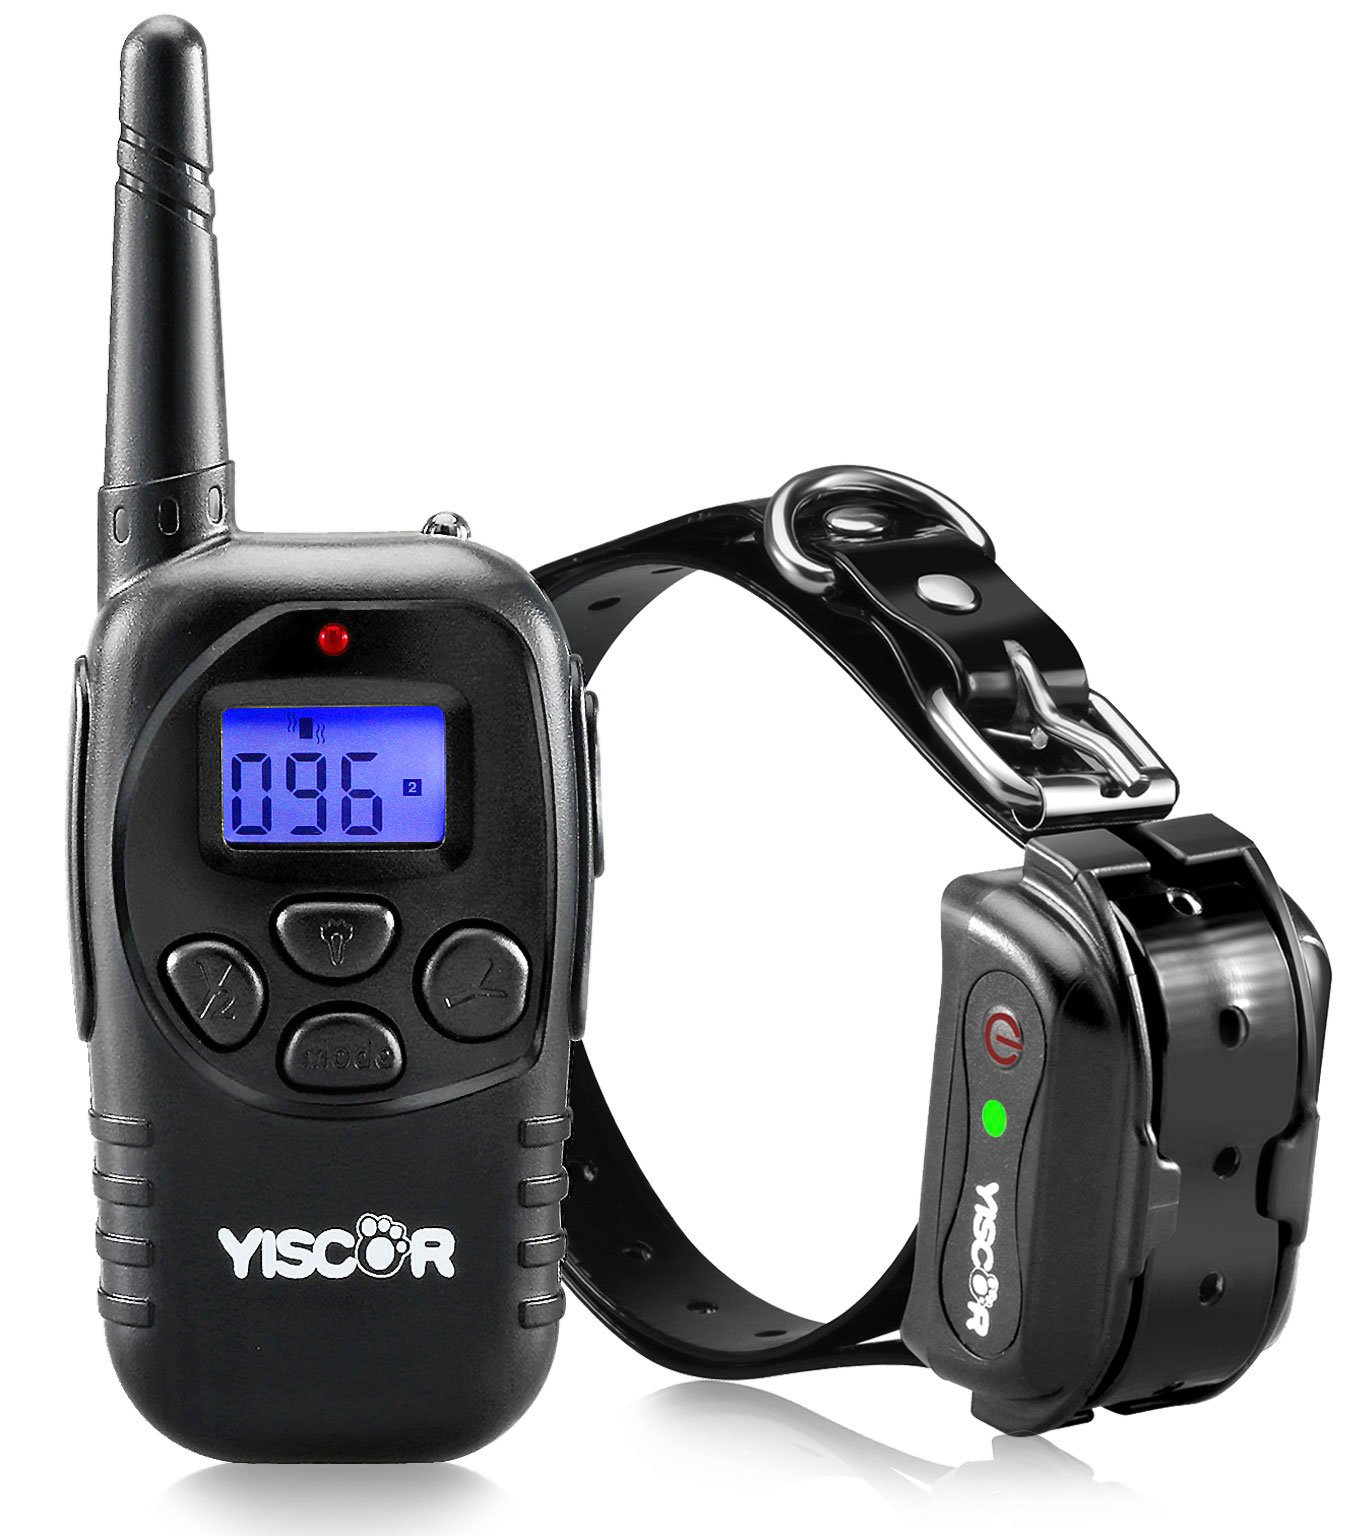 YISCOR Shock Collar for Dogs, Upgraded Dog Training Collars, Remote Waterproof and Rechargable with Shock, Vibration, Beep, And Light,Electric for Small and Large Dogs 1000Ft Range